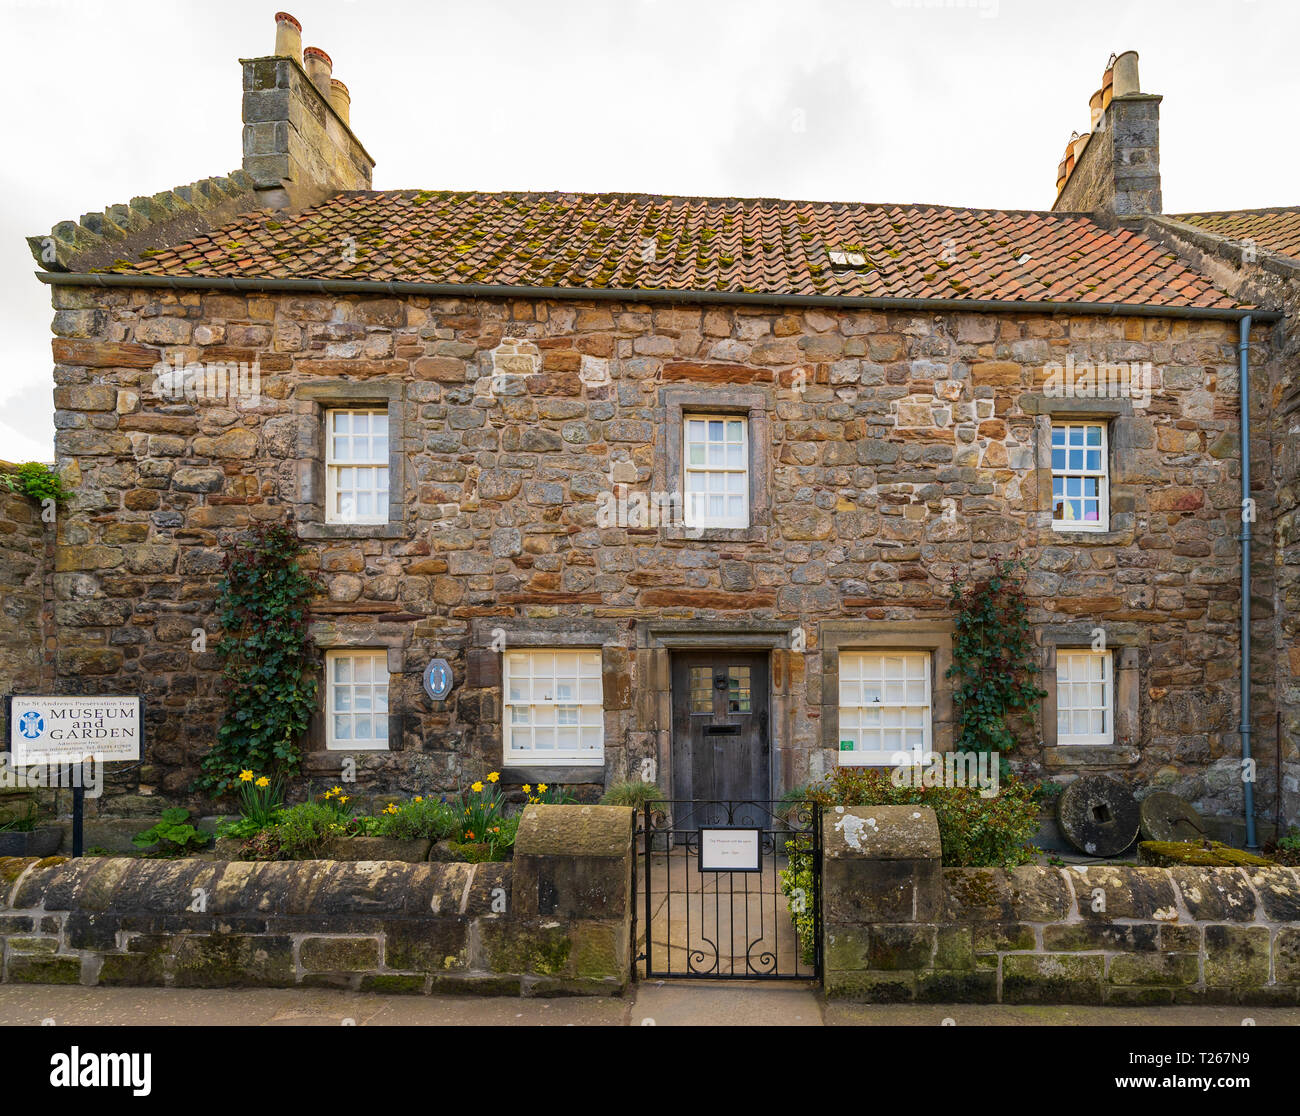 House containing St Andrews Preservation Trust in St Andrews, Fife, Scotland, UK - Stock Image